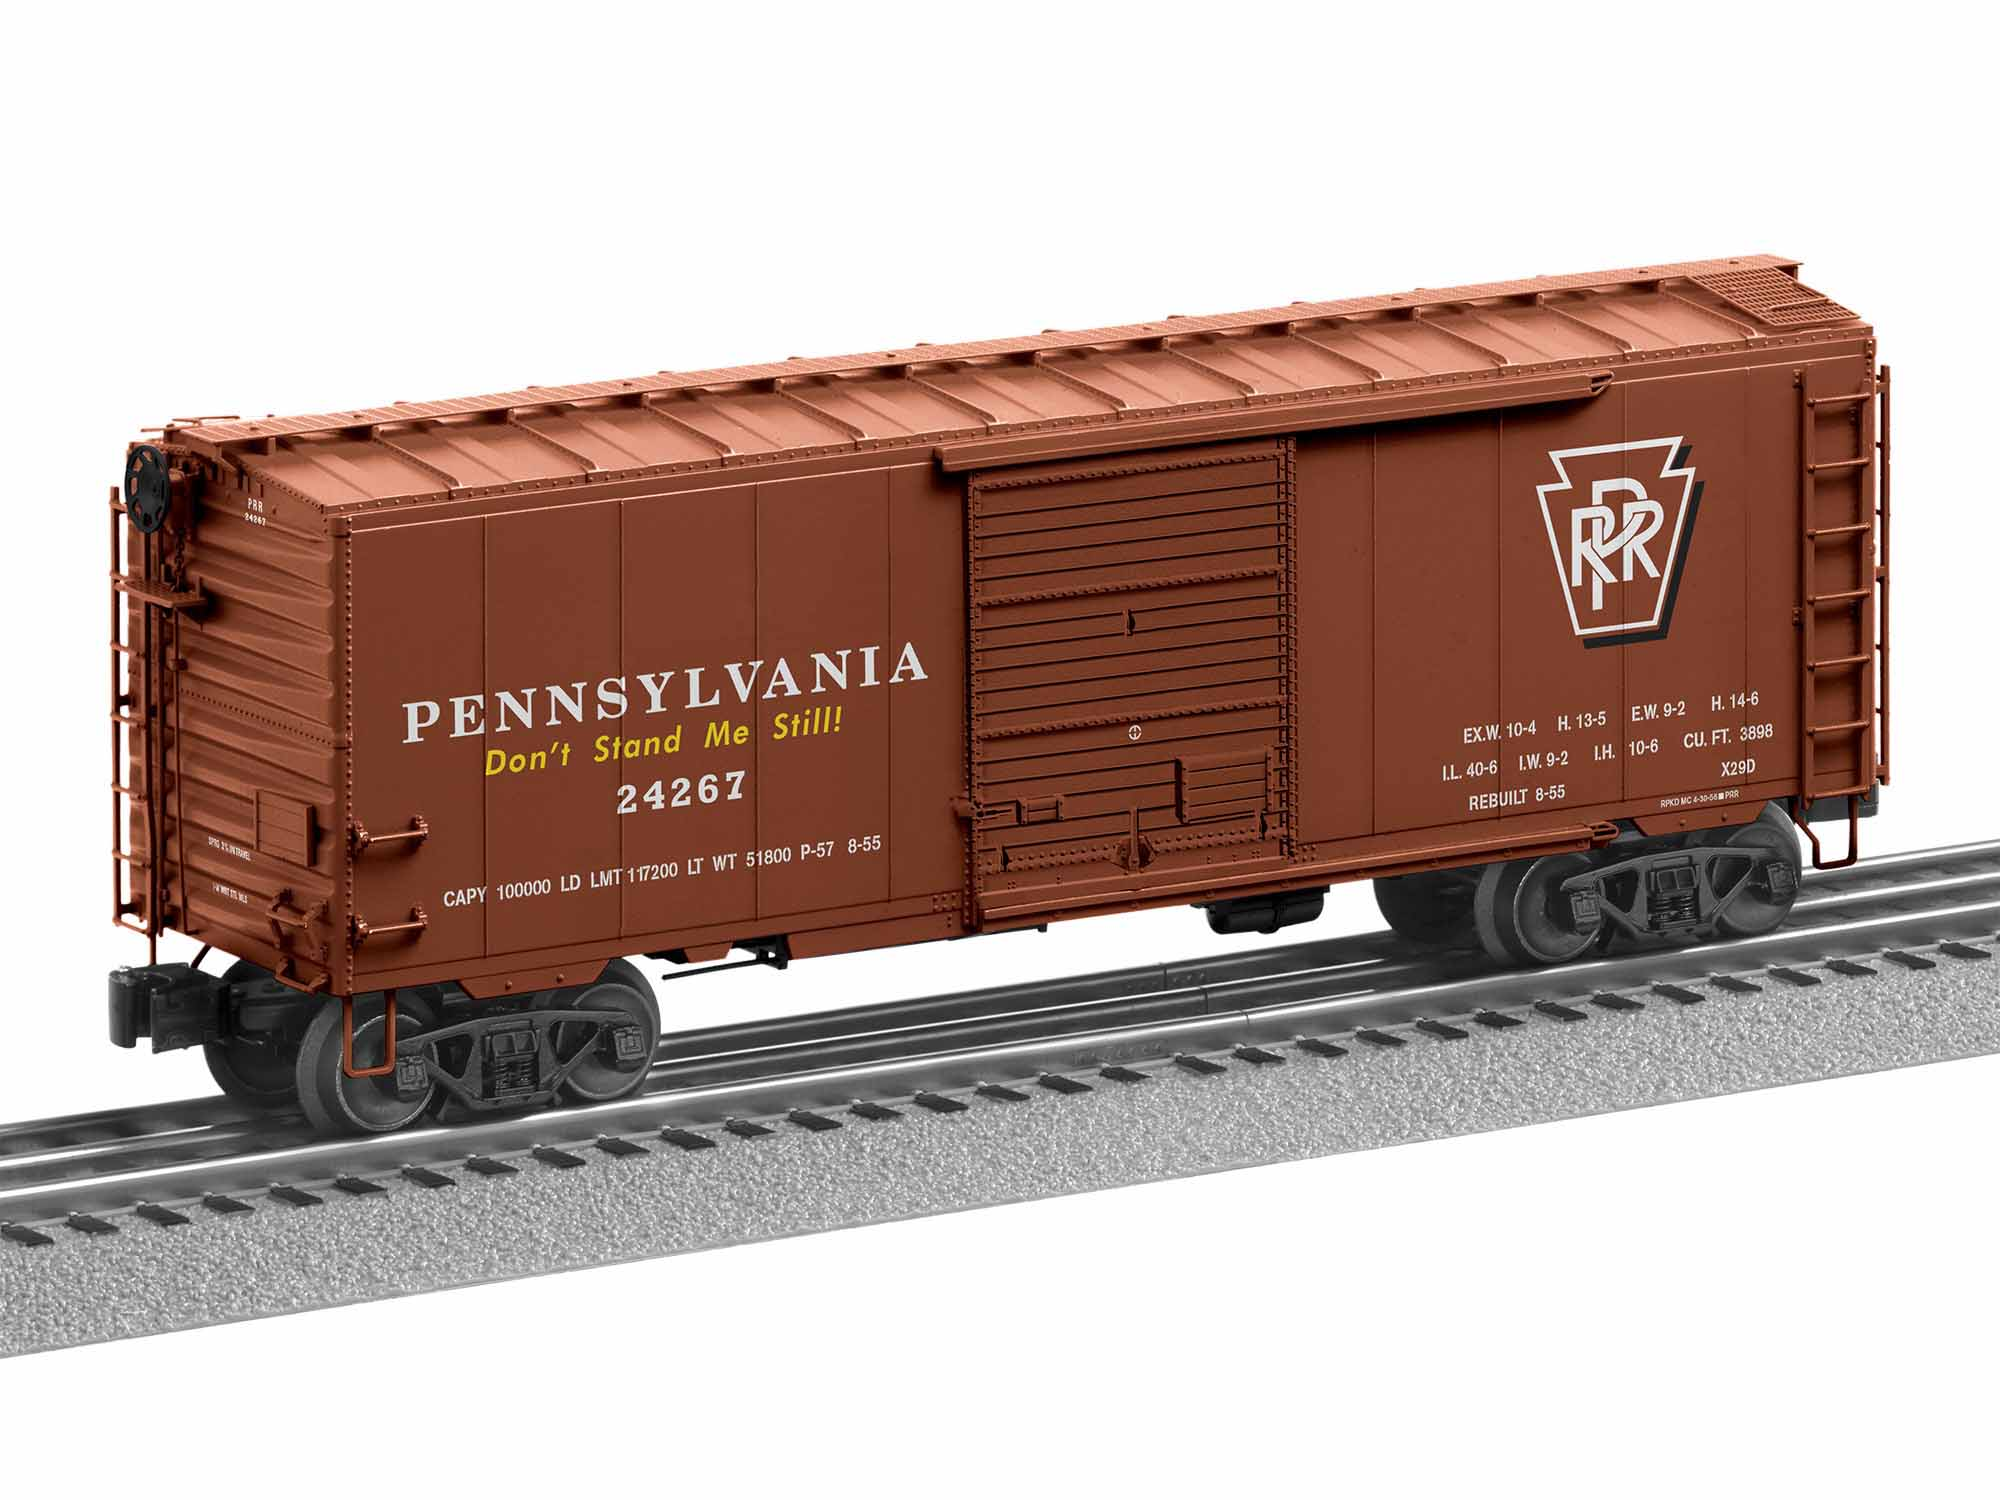 1926640 PENNSYLVANIA FREIGHTSOUNDS PS-1 BOXCAR #24267